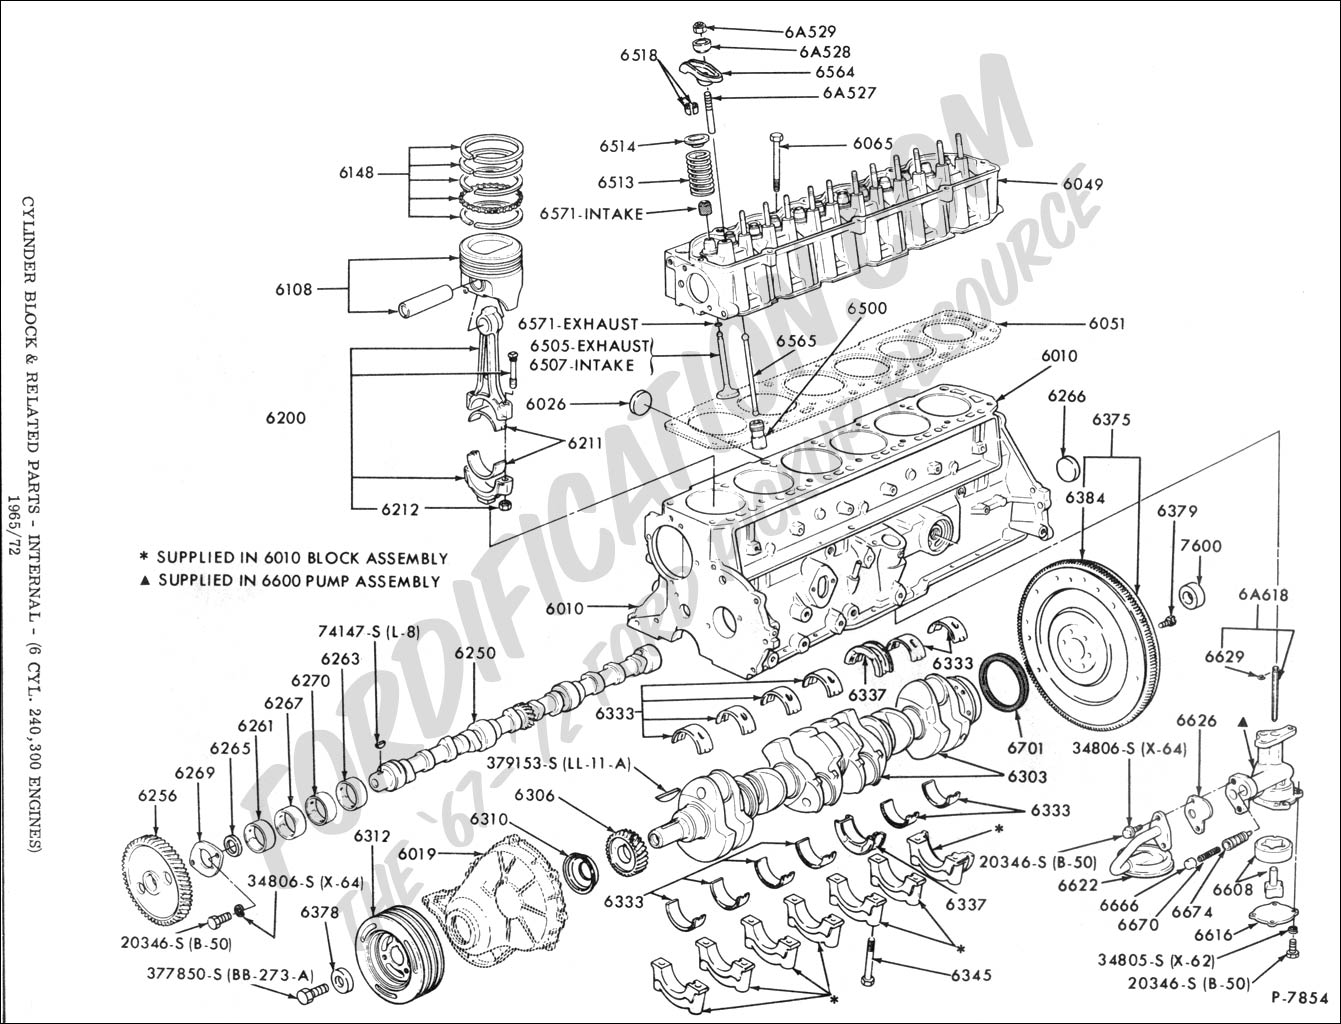 1341x1024 ford truck technical drawings and schematics